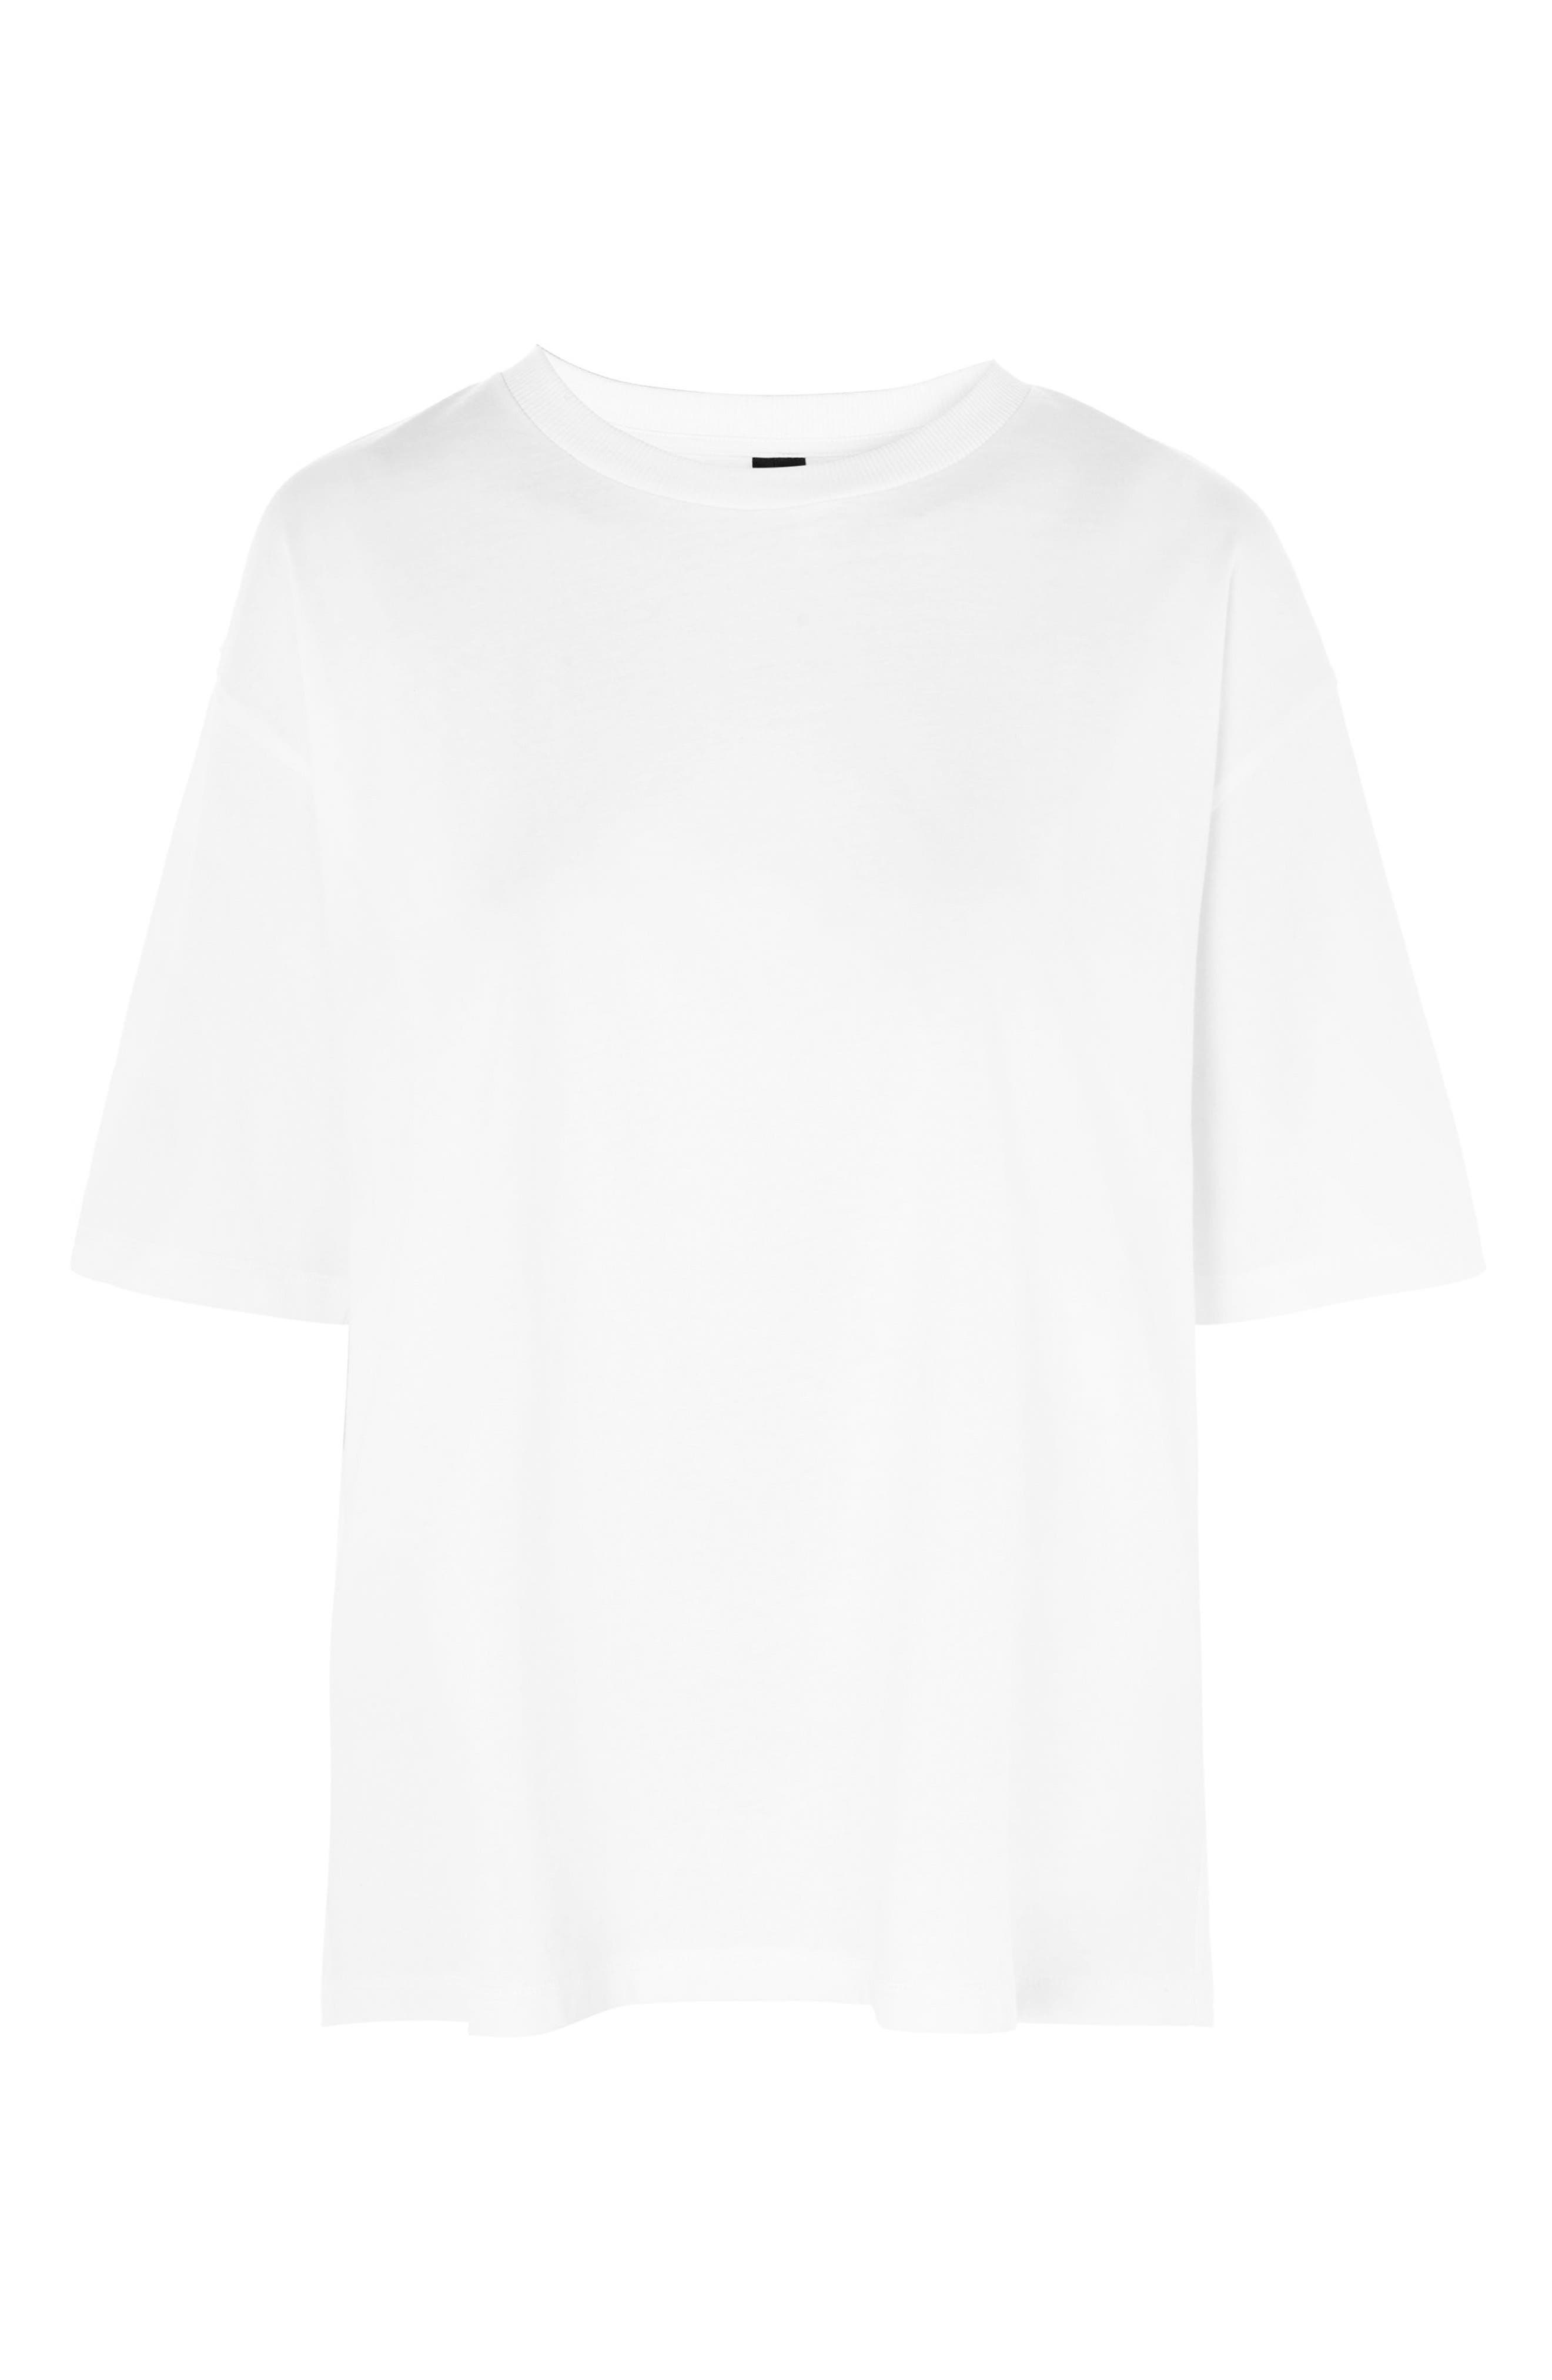 Boxy T-Shirt,                         Main,                         color, White